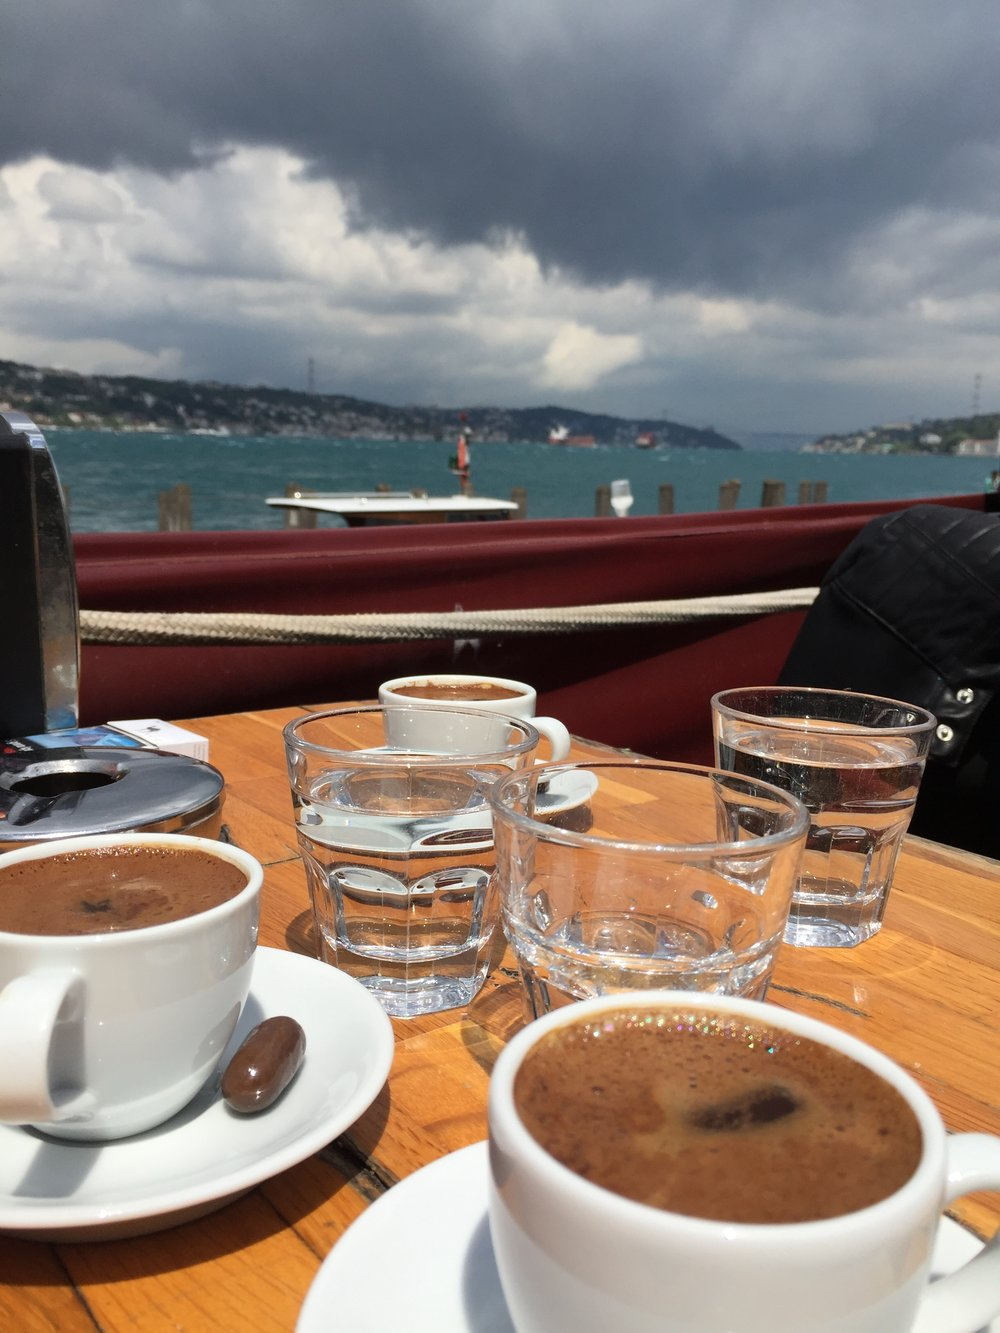 The famous Turkish coffee sipped by the Bosporus of course.